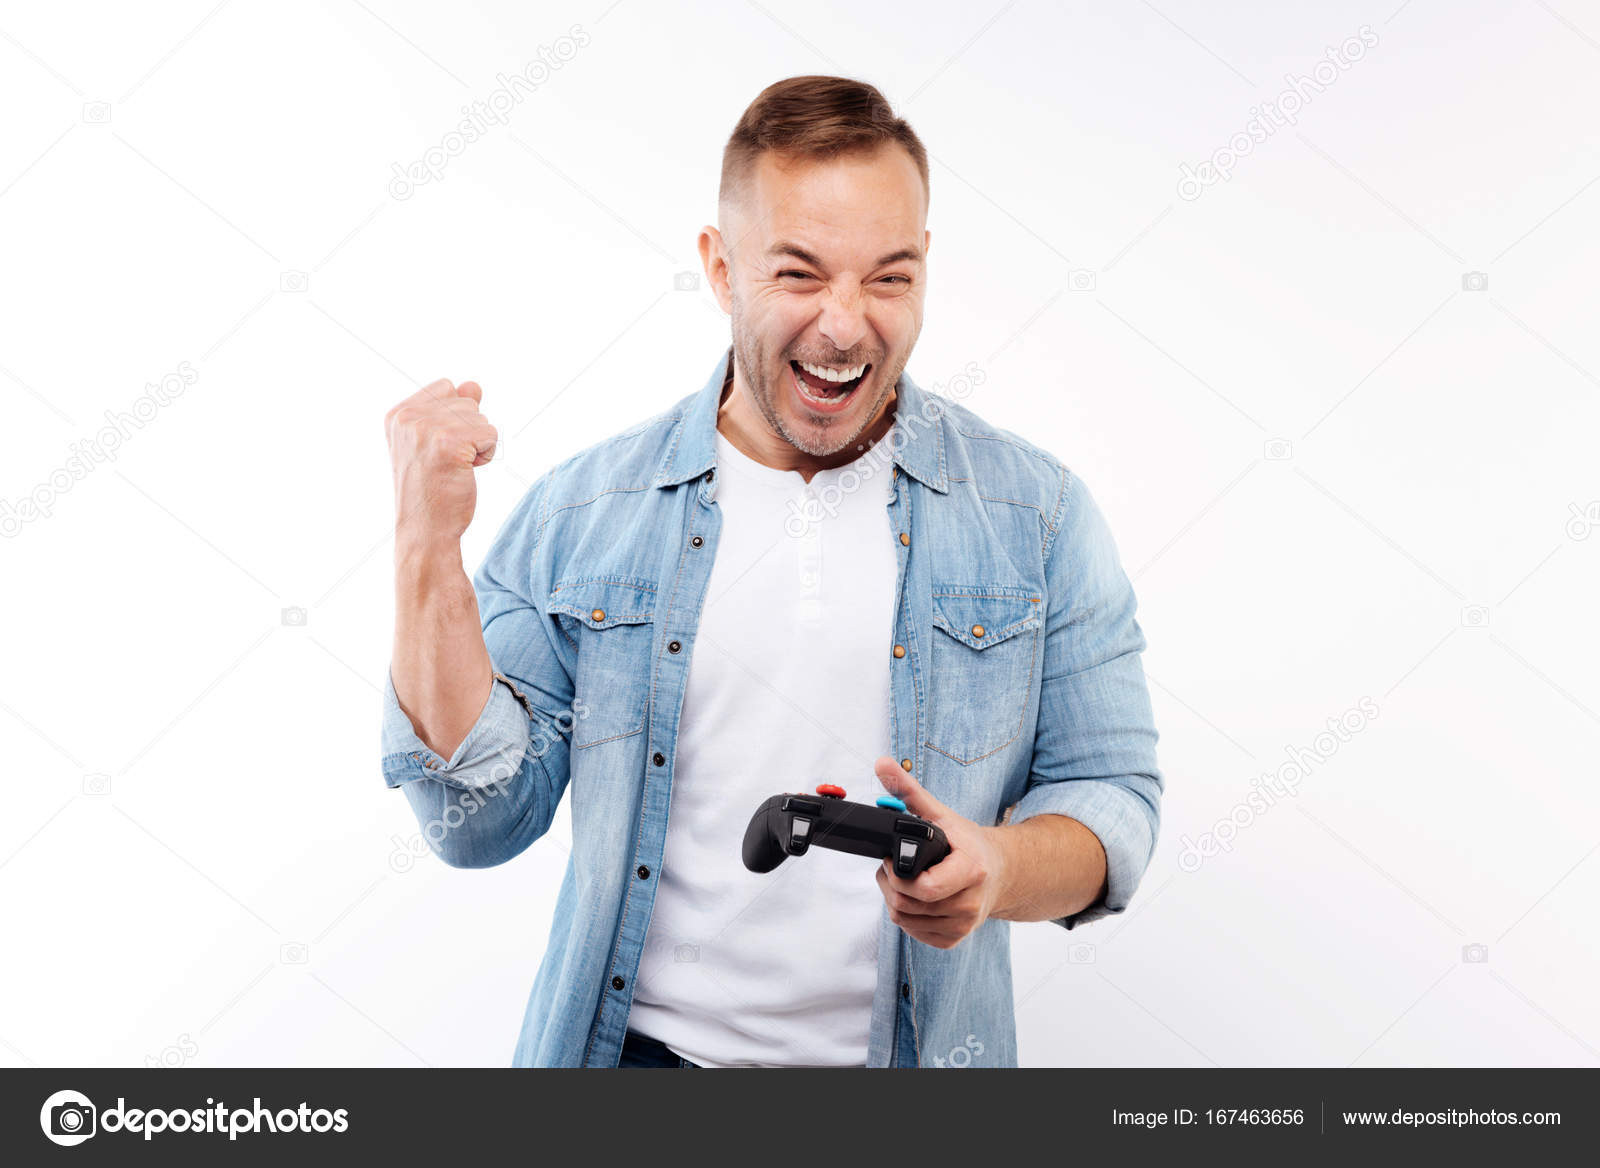 Happy Man Celebrating Victory In Video Game Stock Photo